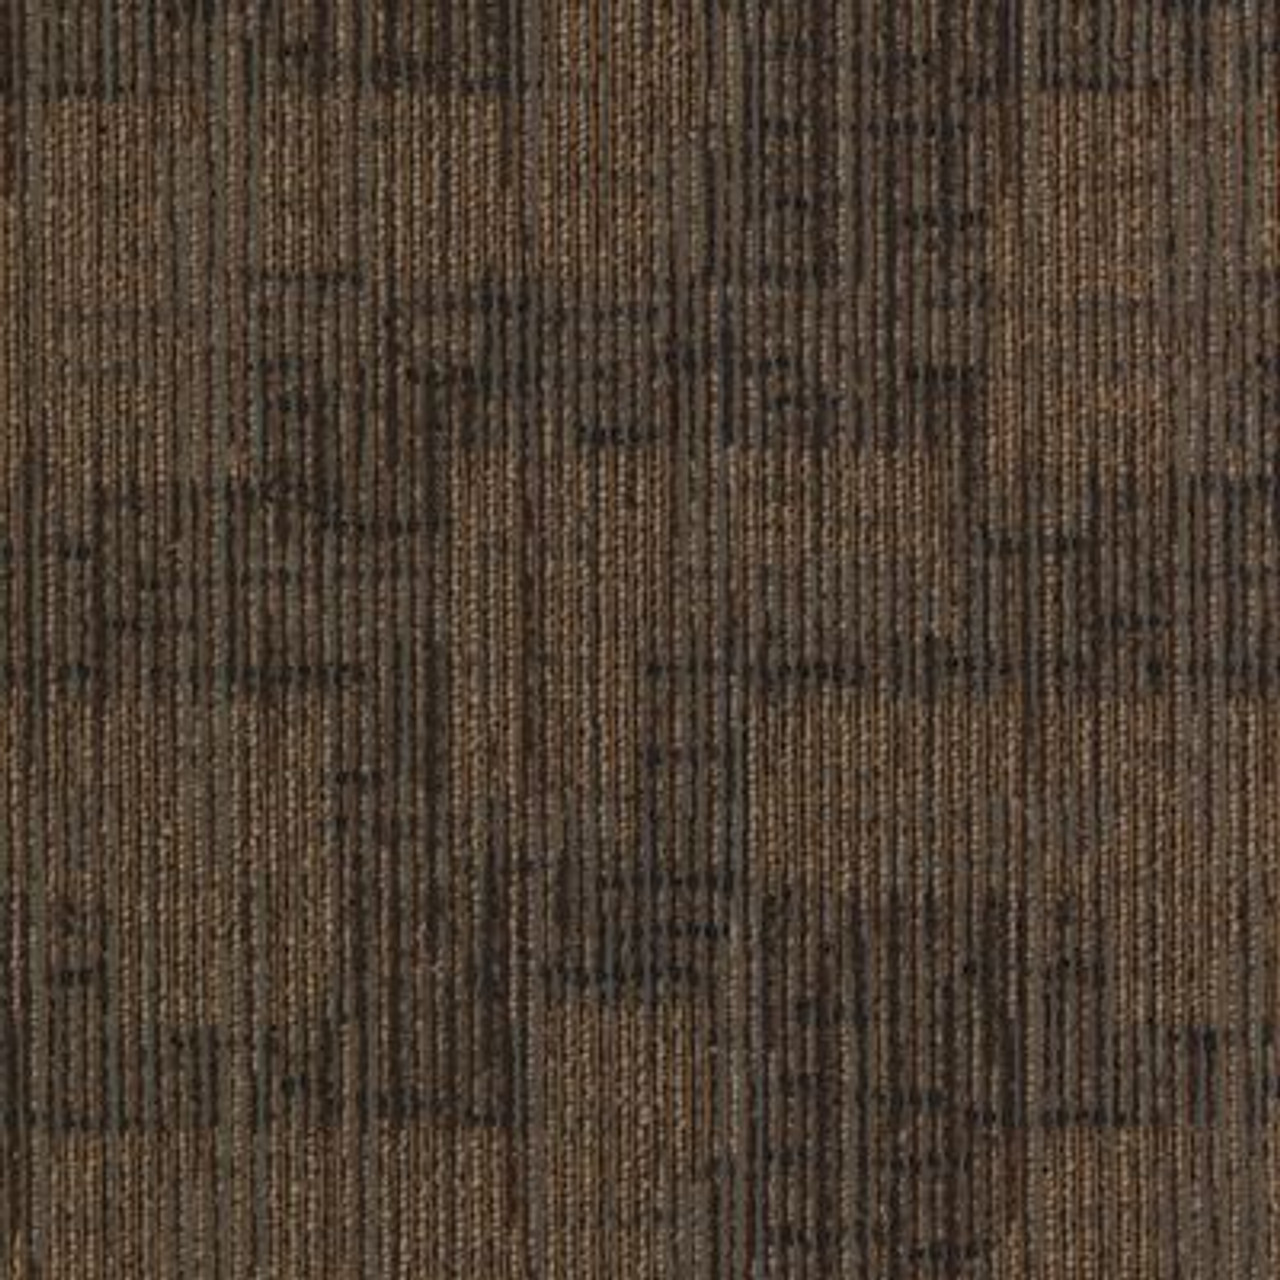 Image of: Mohawk Authentic Format Rethinking Form Carpet Tile Regal Floor Coverings